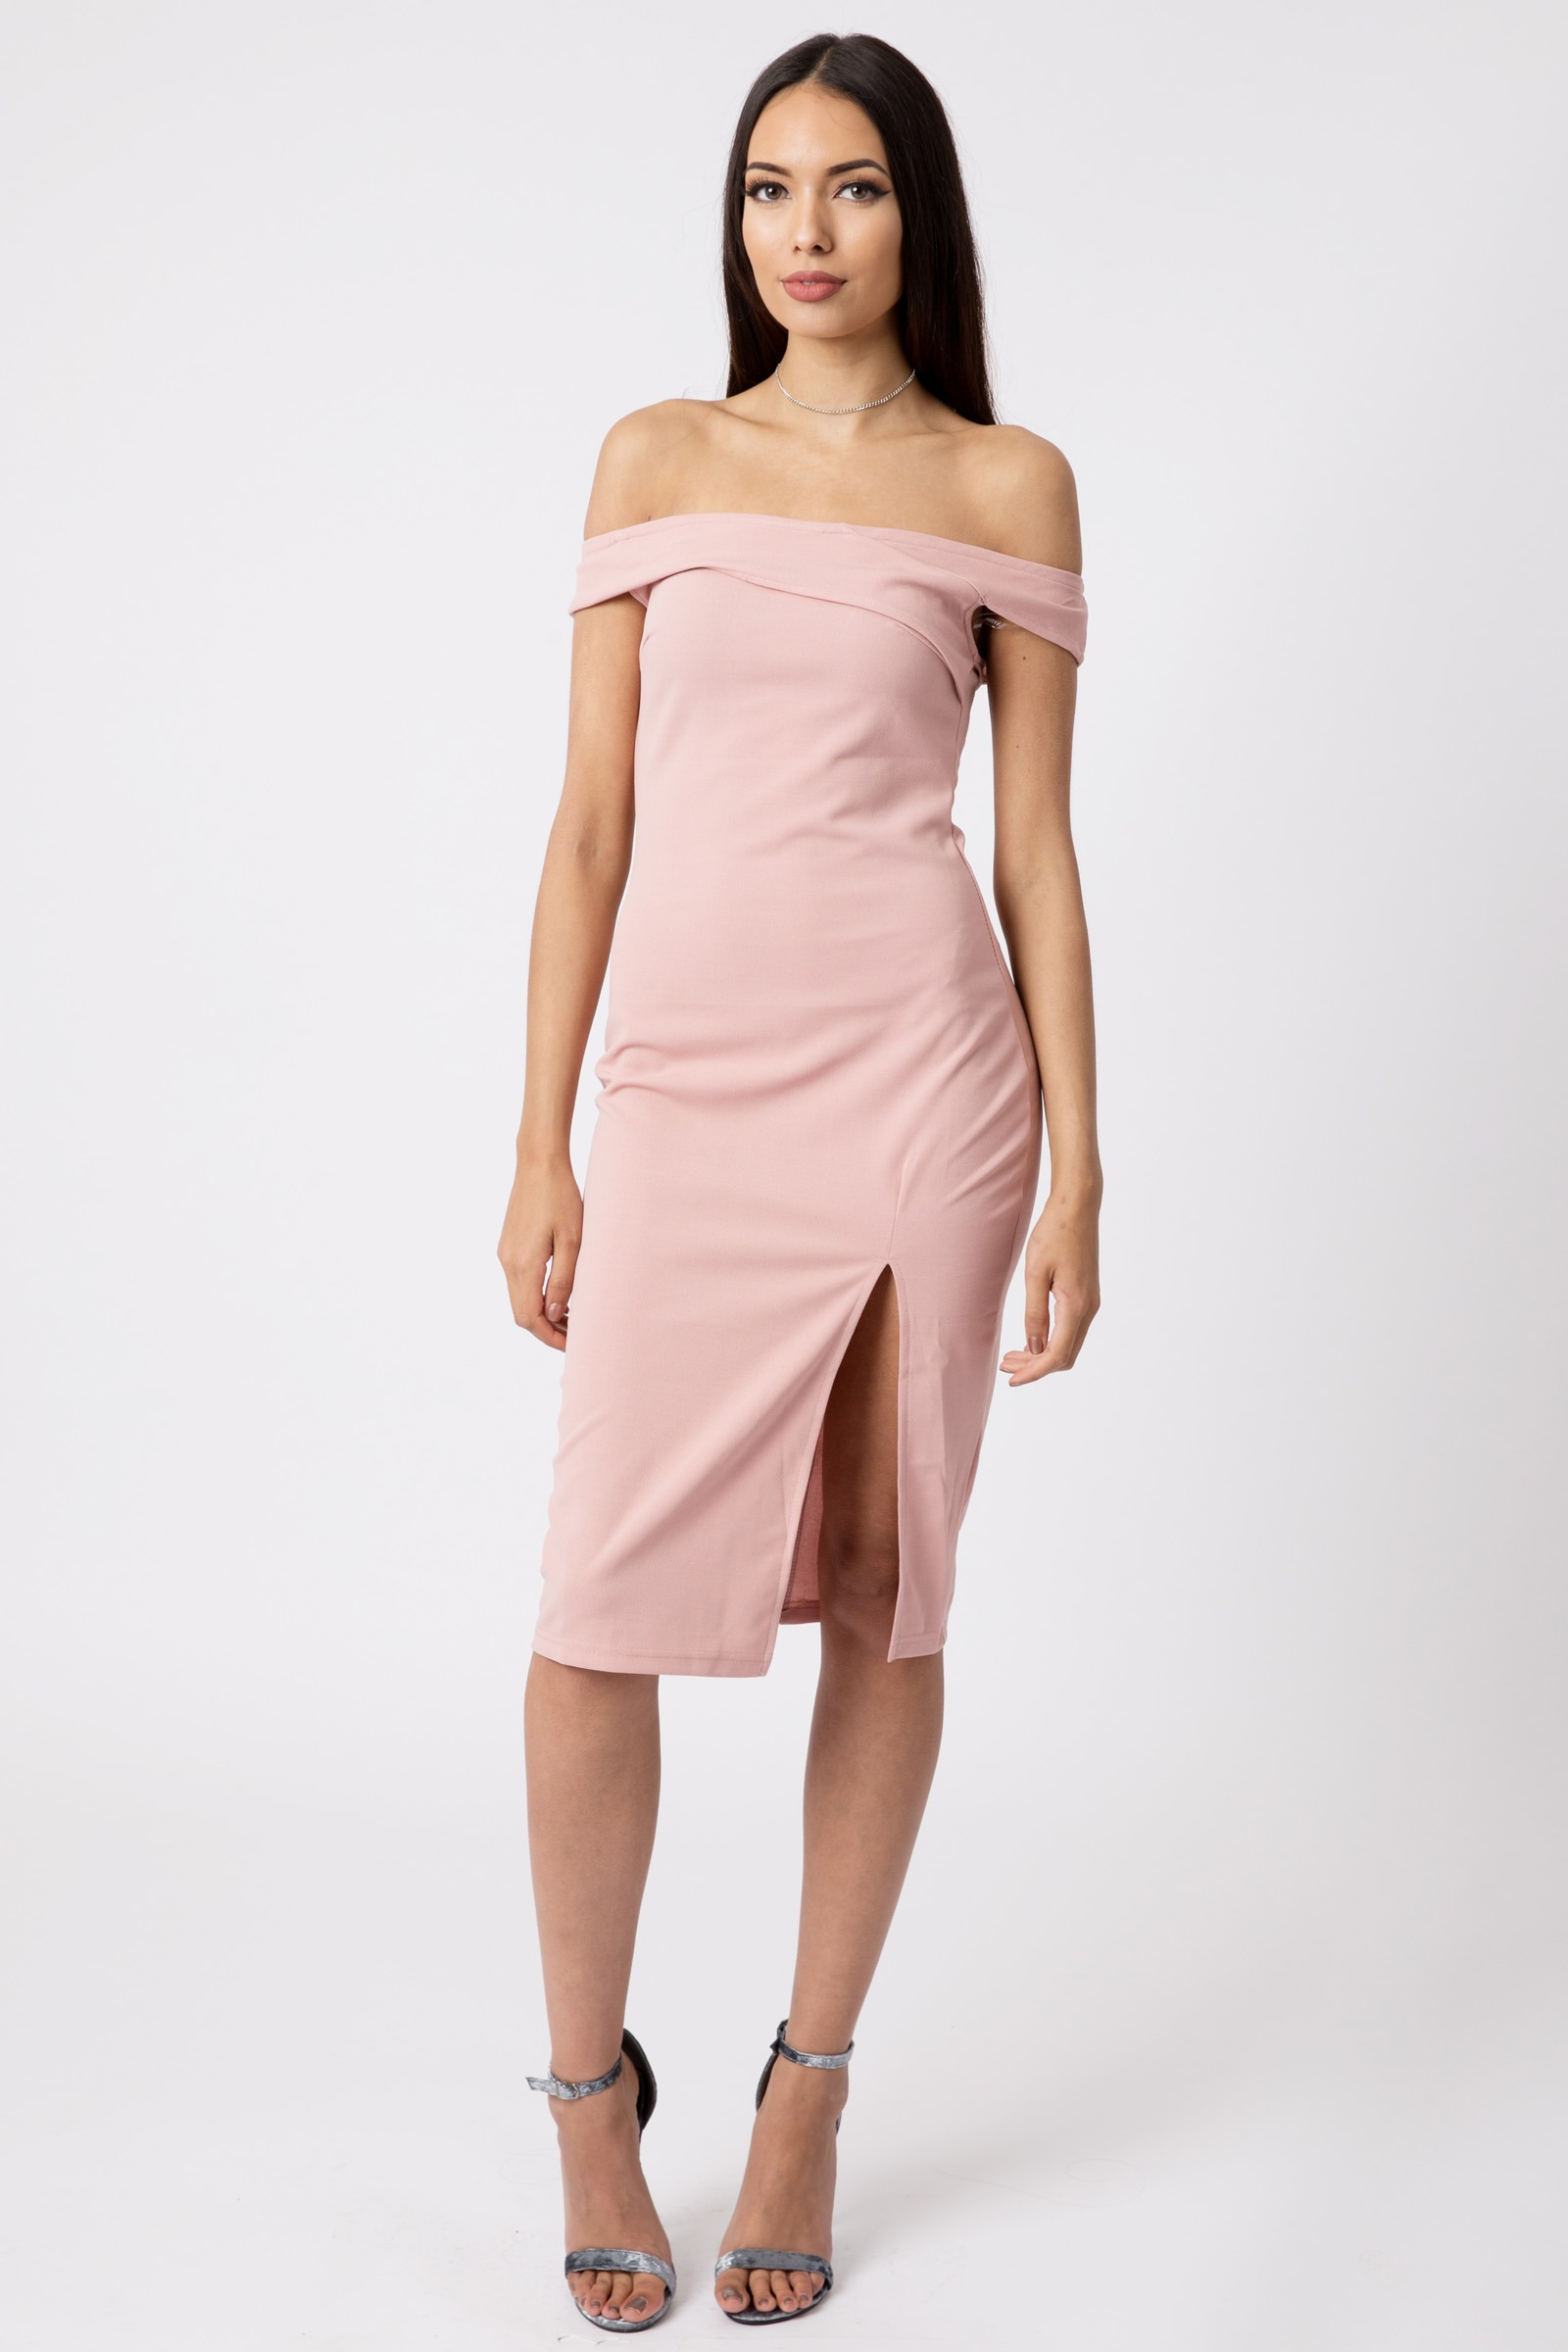 FREE SHIPPING AND FREE RETURNS on Designer Dresses & Gowns for Loyallists or any order above $ at Bloomingdale's. Pickup In Store is available for select items! Irlina Serenity Off-the-Shoulder Dress. $ Whistles. Printed One-Shoulder Dress. $ New Arrival x Martha Hunt Isla One-Shoulder Dress - % Exclusive. Orig.